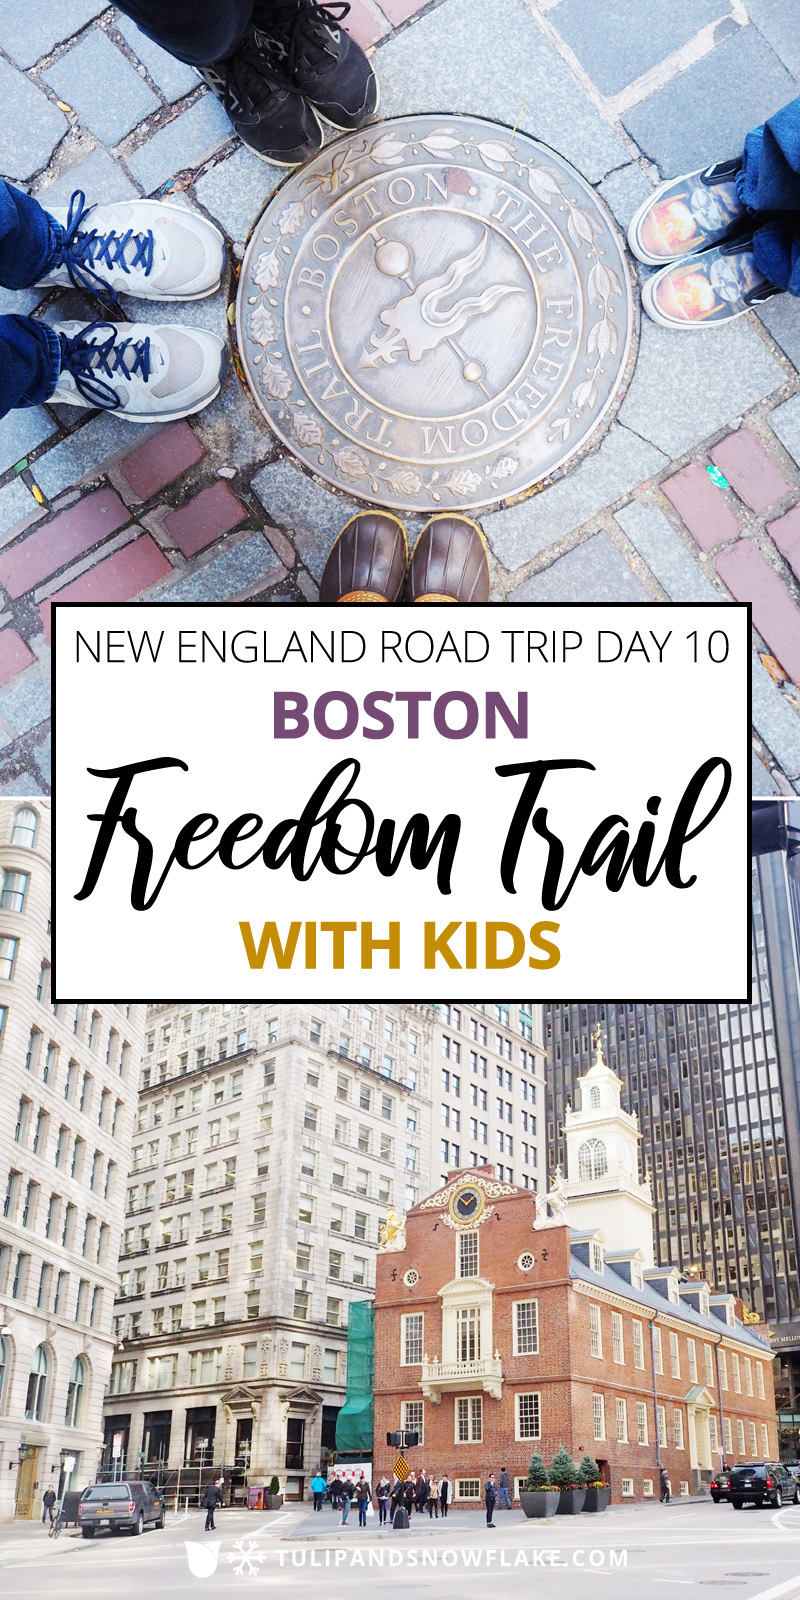 Boston Freedom Trail with Kids